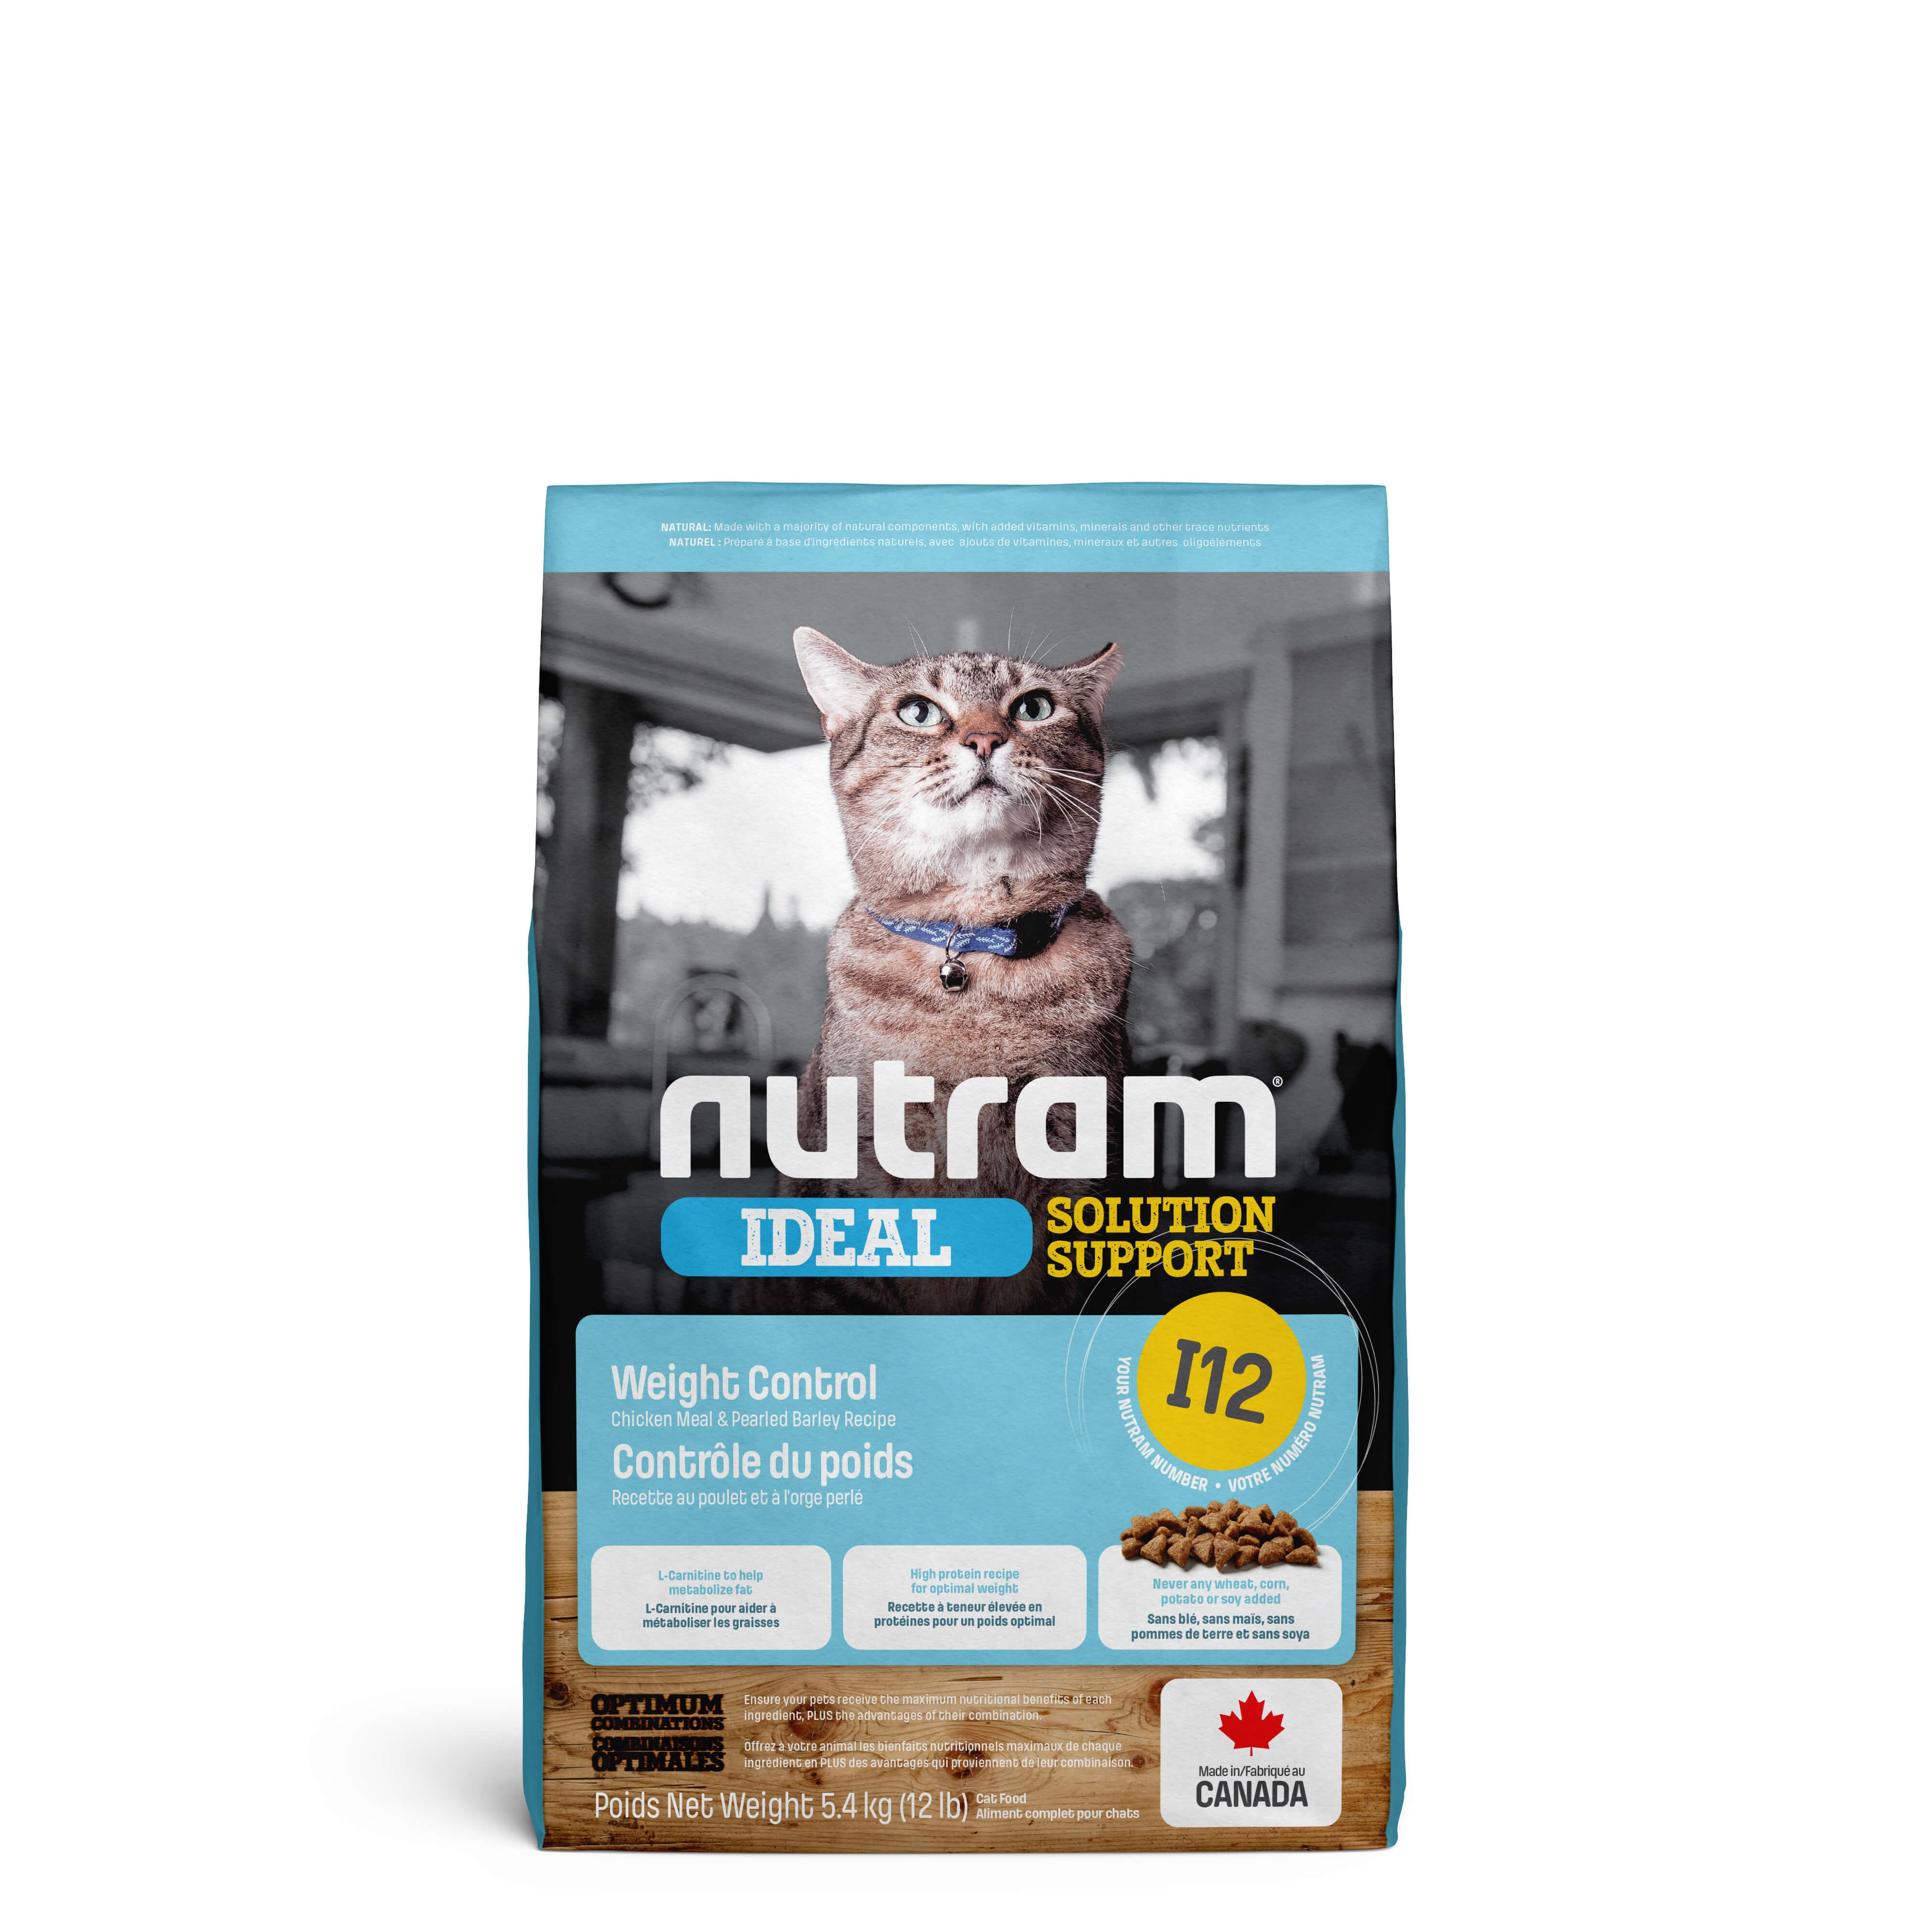 Nutram Ideal Solution Support Weight Control I12 Chat